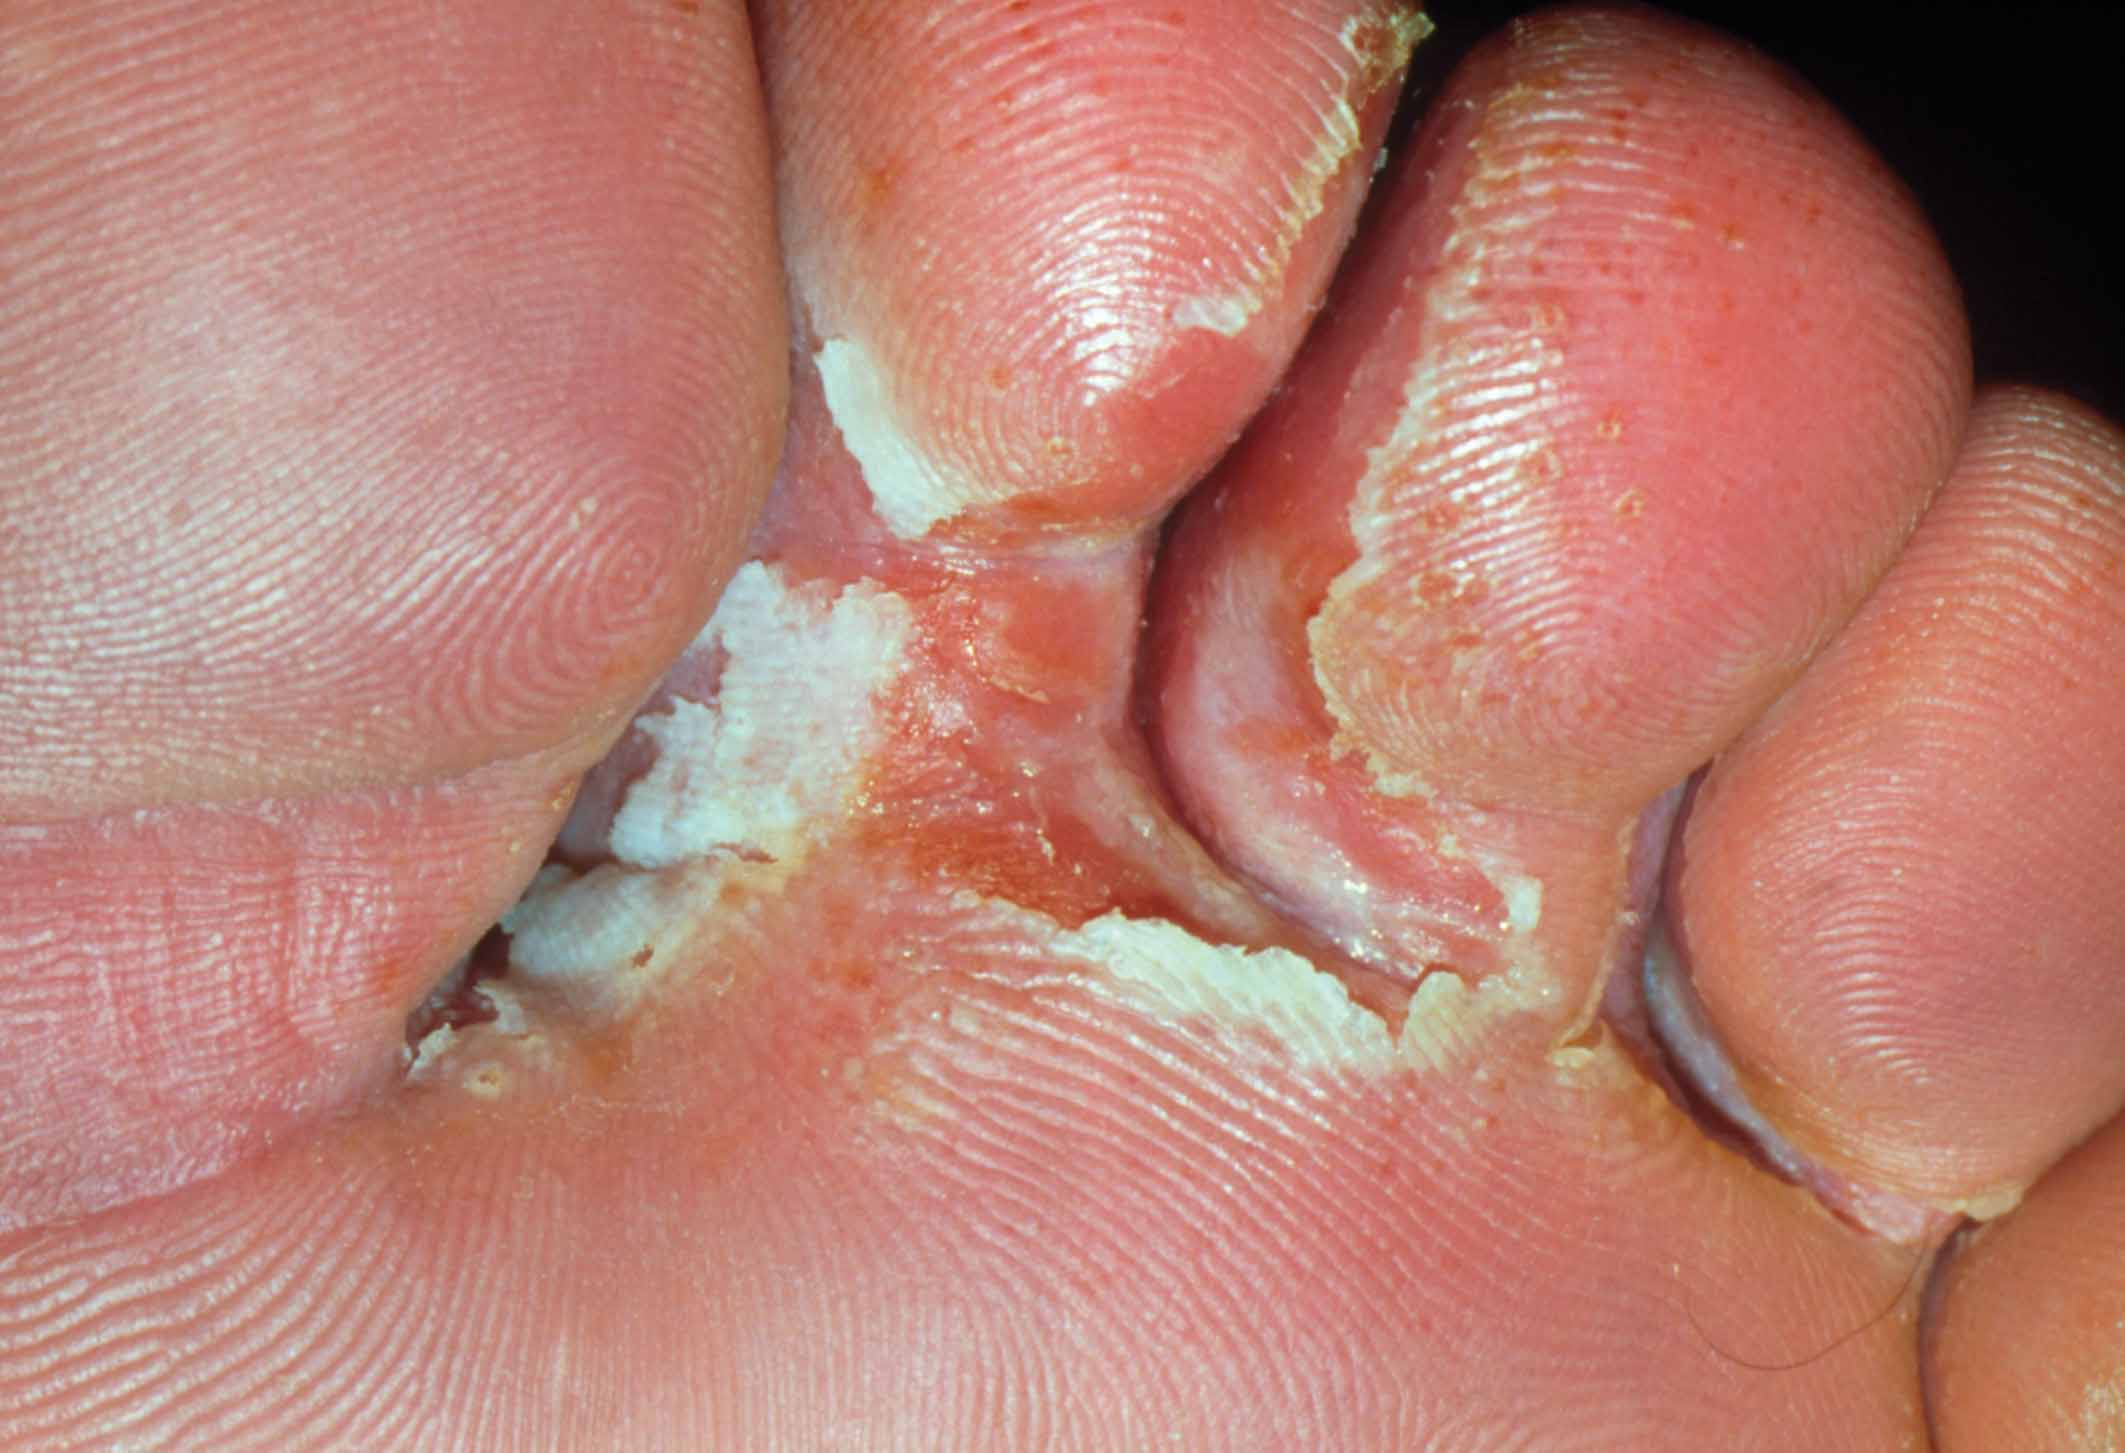 Tinea pedis | definition of tinea pedis by Medical dictionary